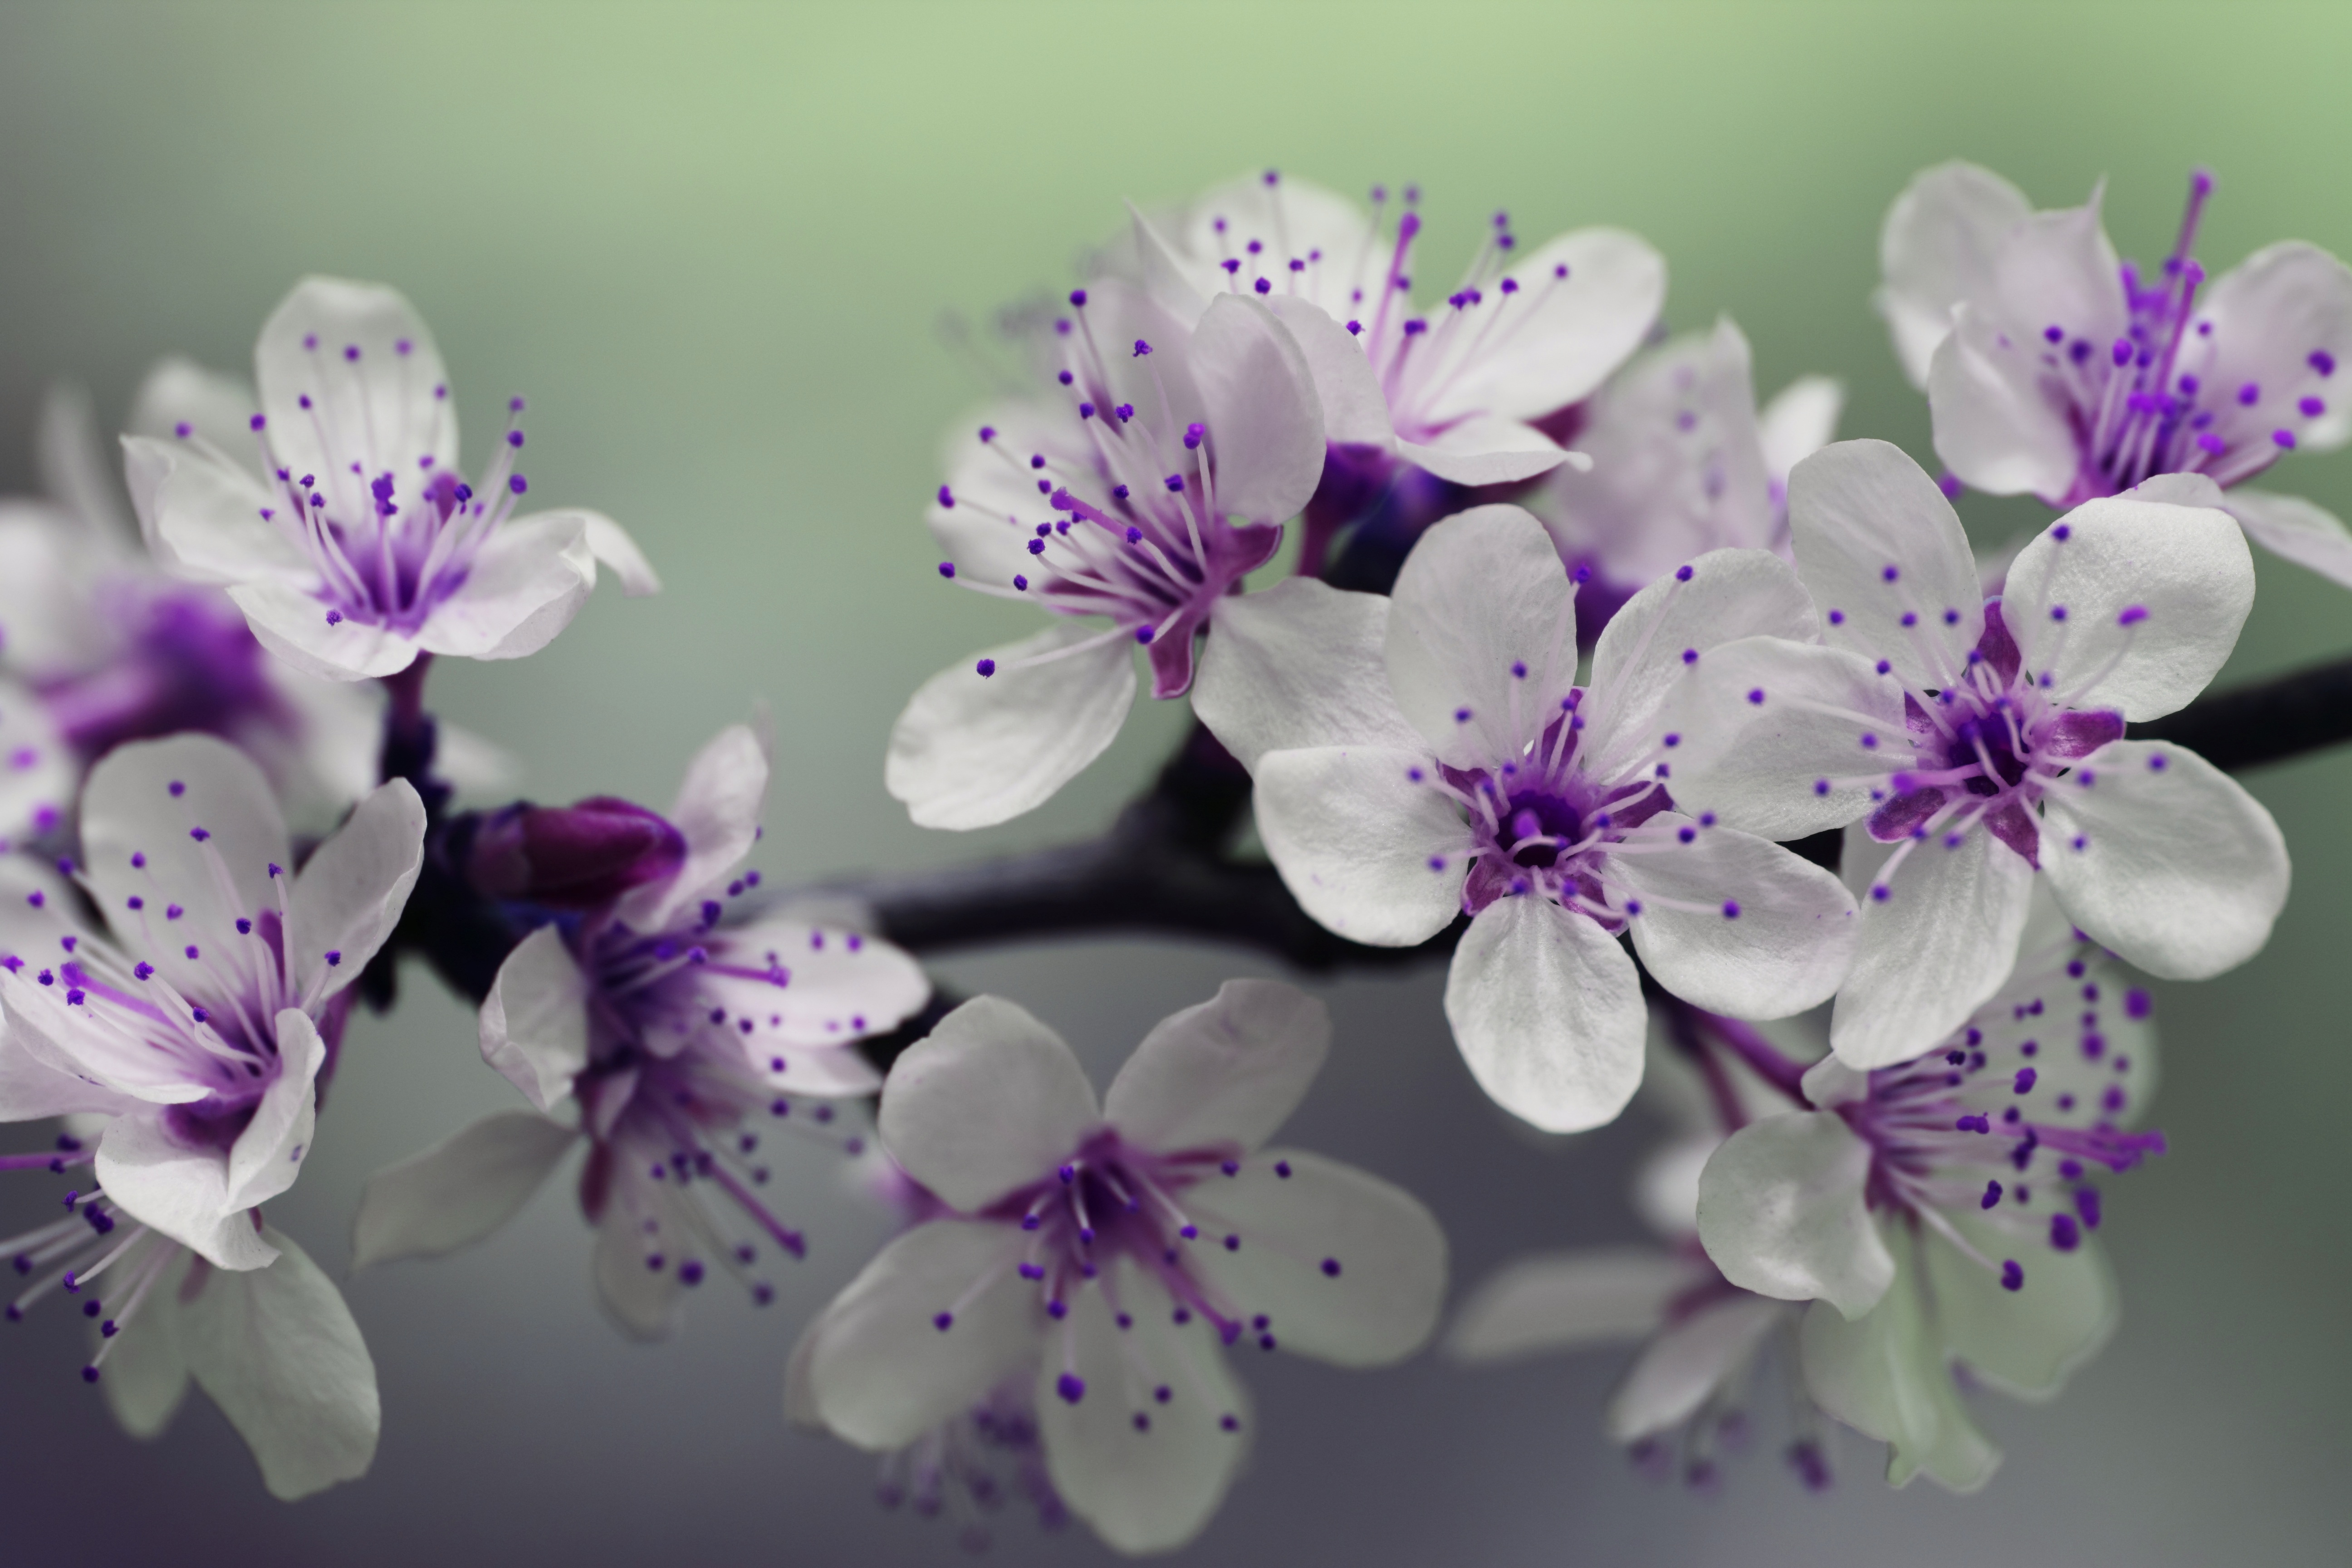 150733 download wallpaper Macro, Cherry, Bloom, Flowering, Branch, Spring screensavers and pictures for free